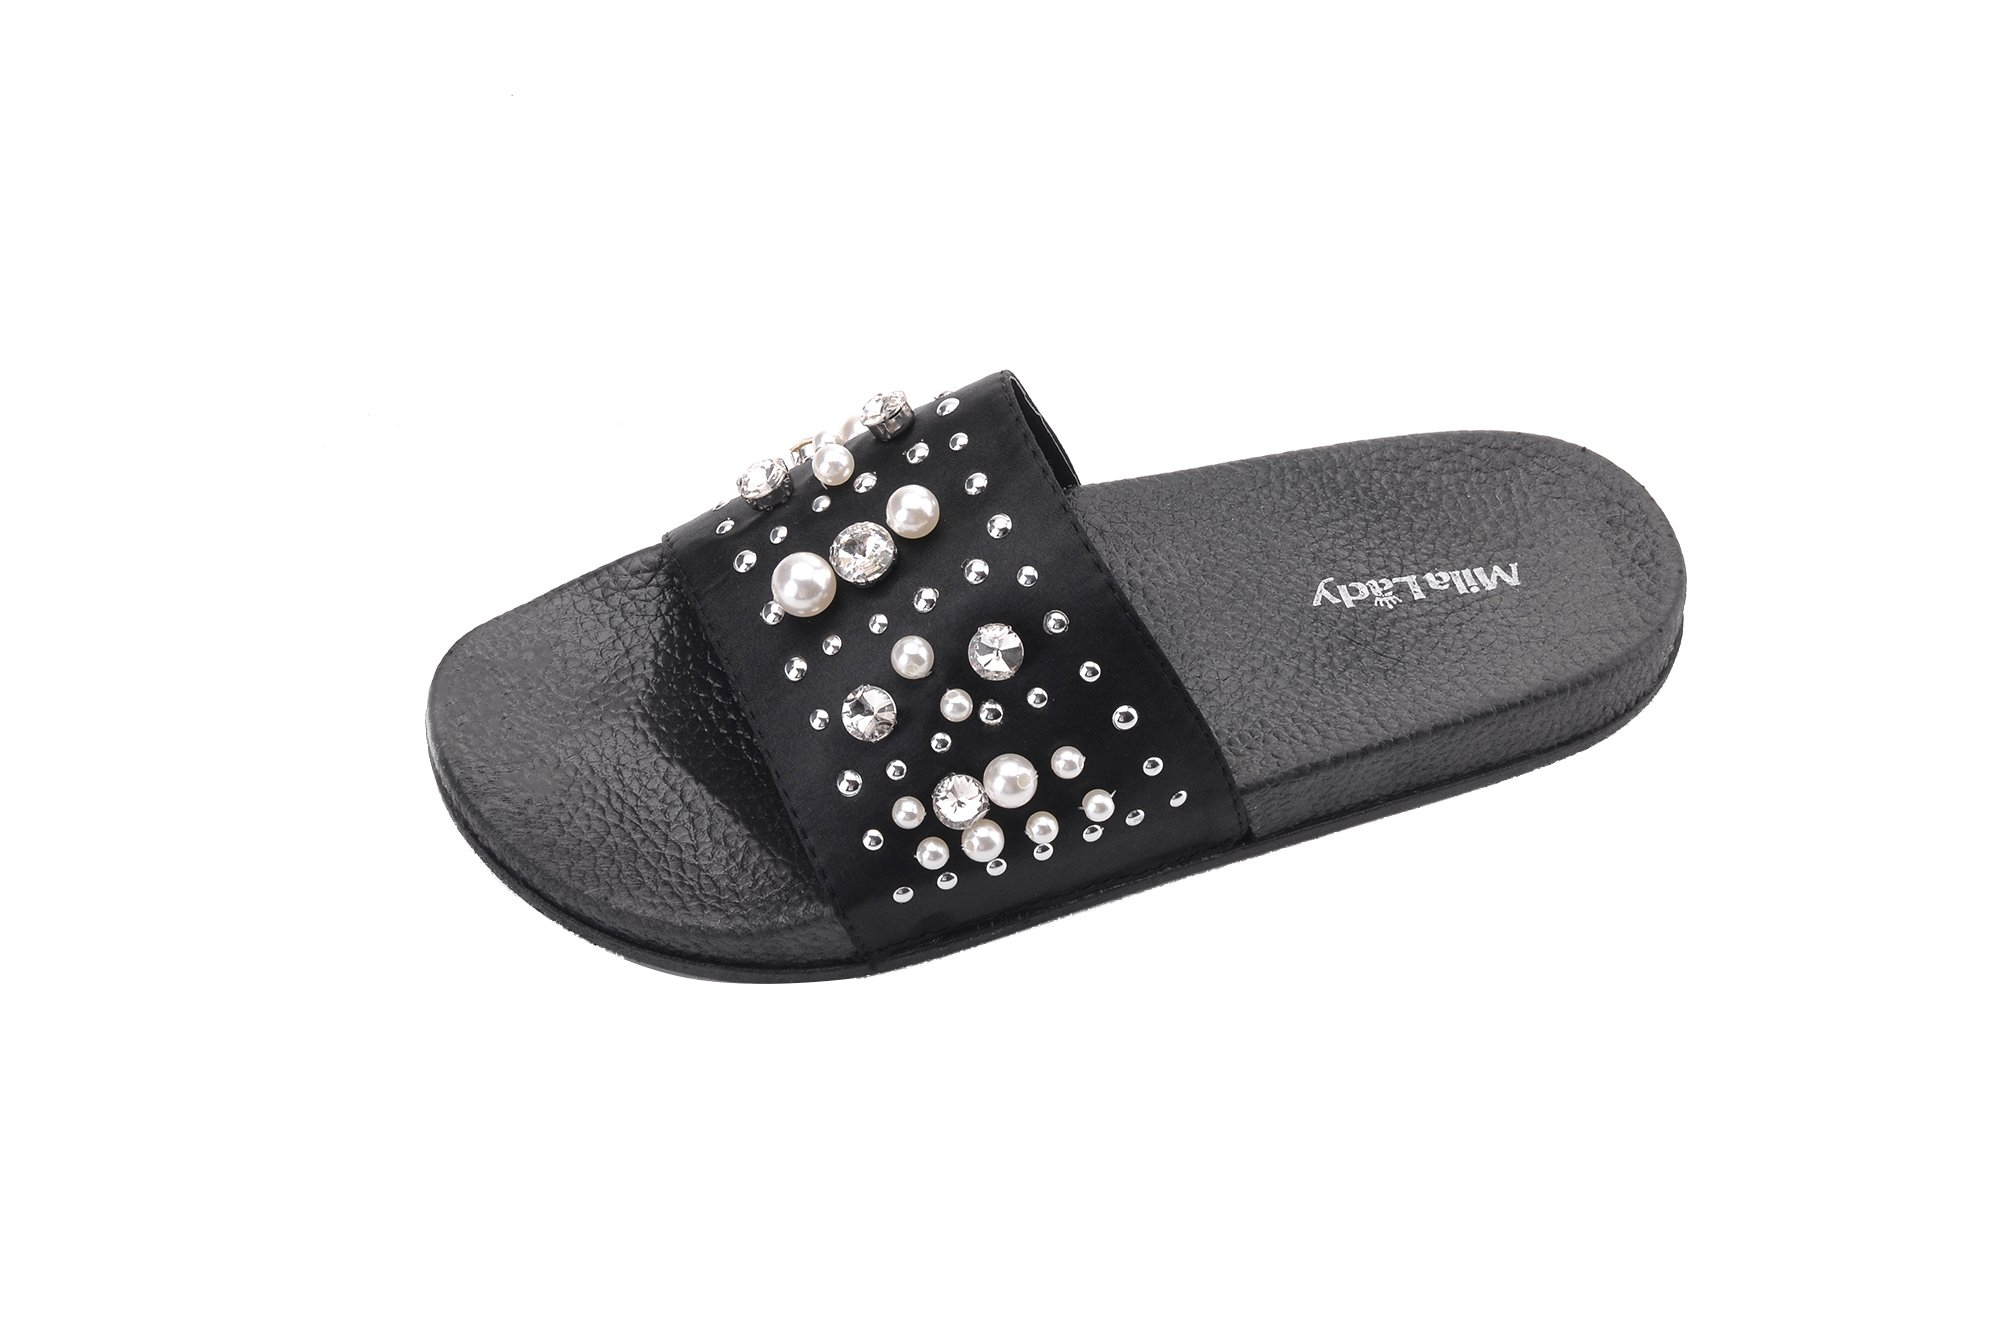 Ashley A Collection Sandy Women's Fashion Slipper with Pearl and Rhinestone Upper Slip On Silky Slide Sandal, Black 7